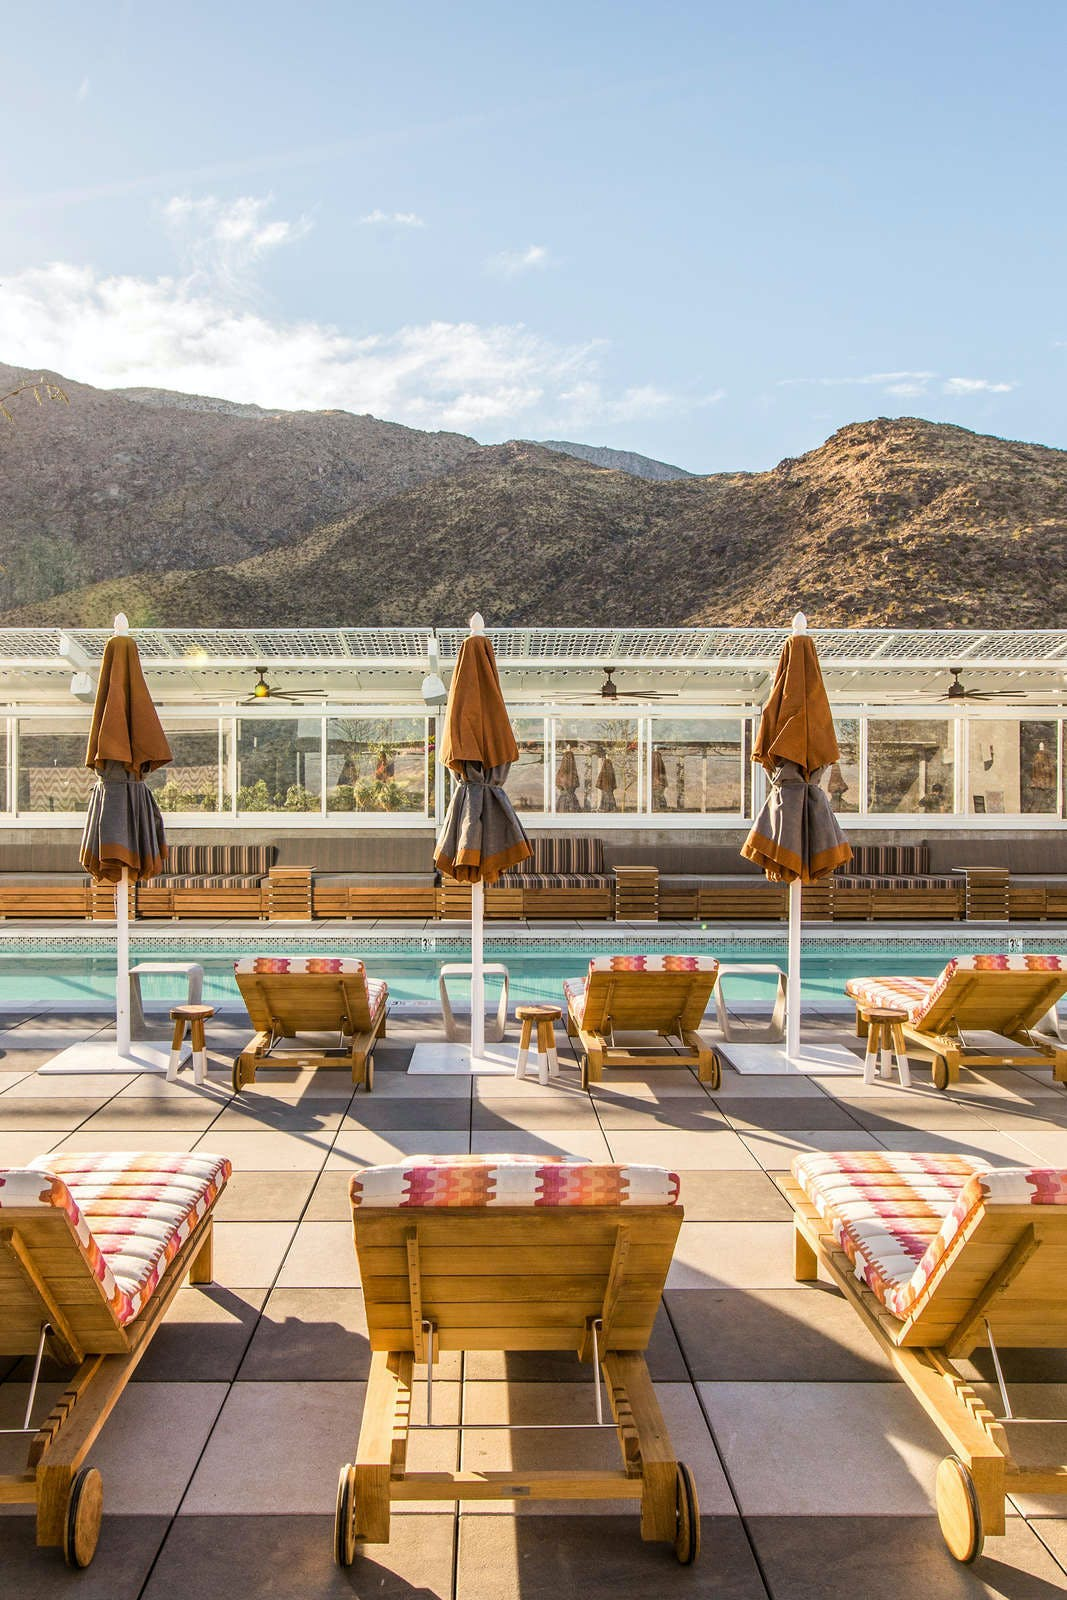 Kimpton Rowan Palm Springs